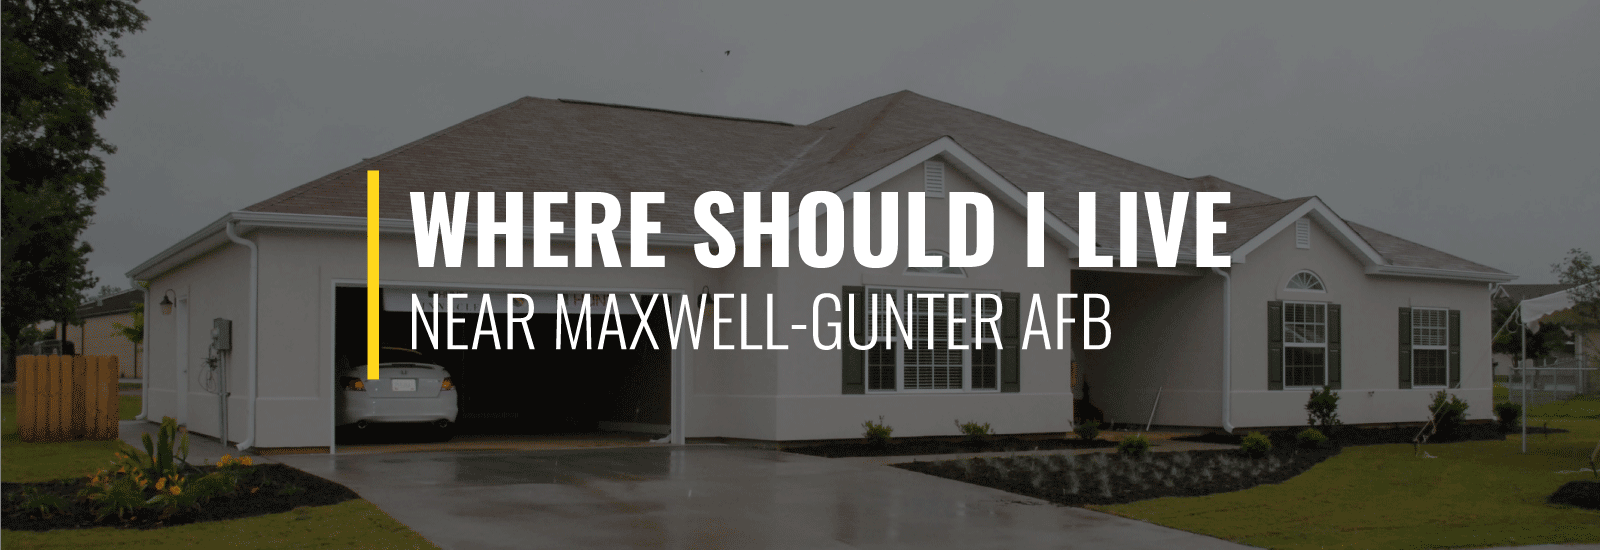 Where Should I Live Near Maxwell-Gunter Air Force Base?